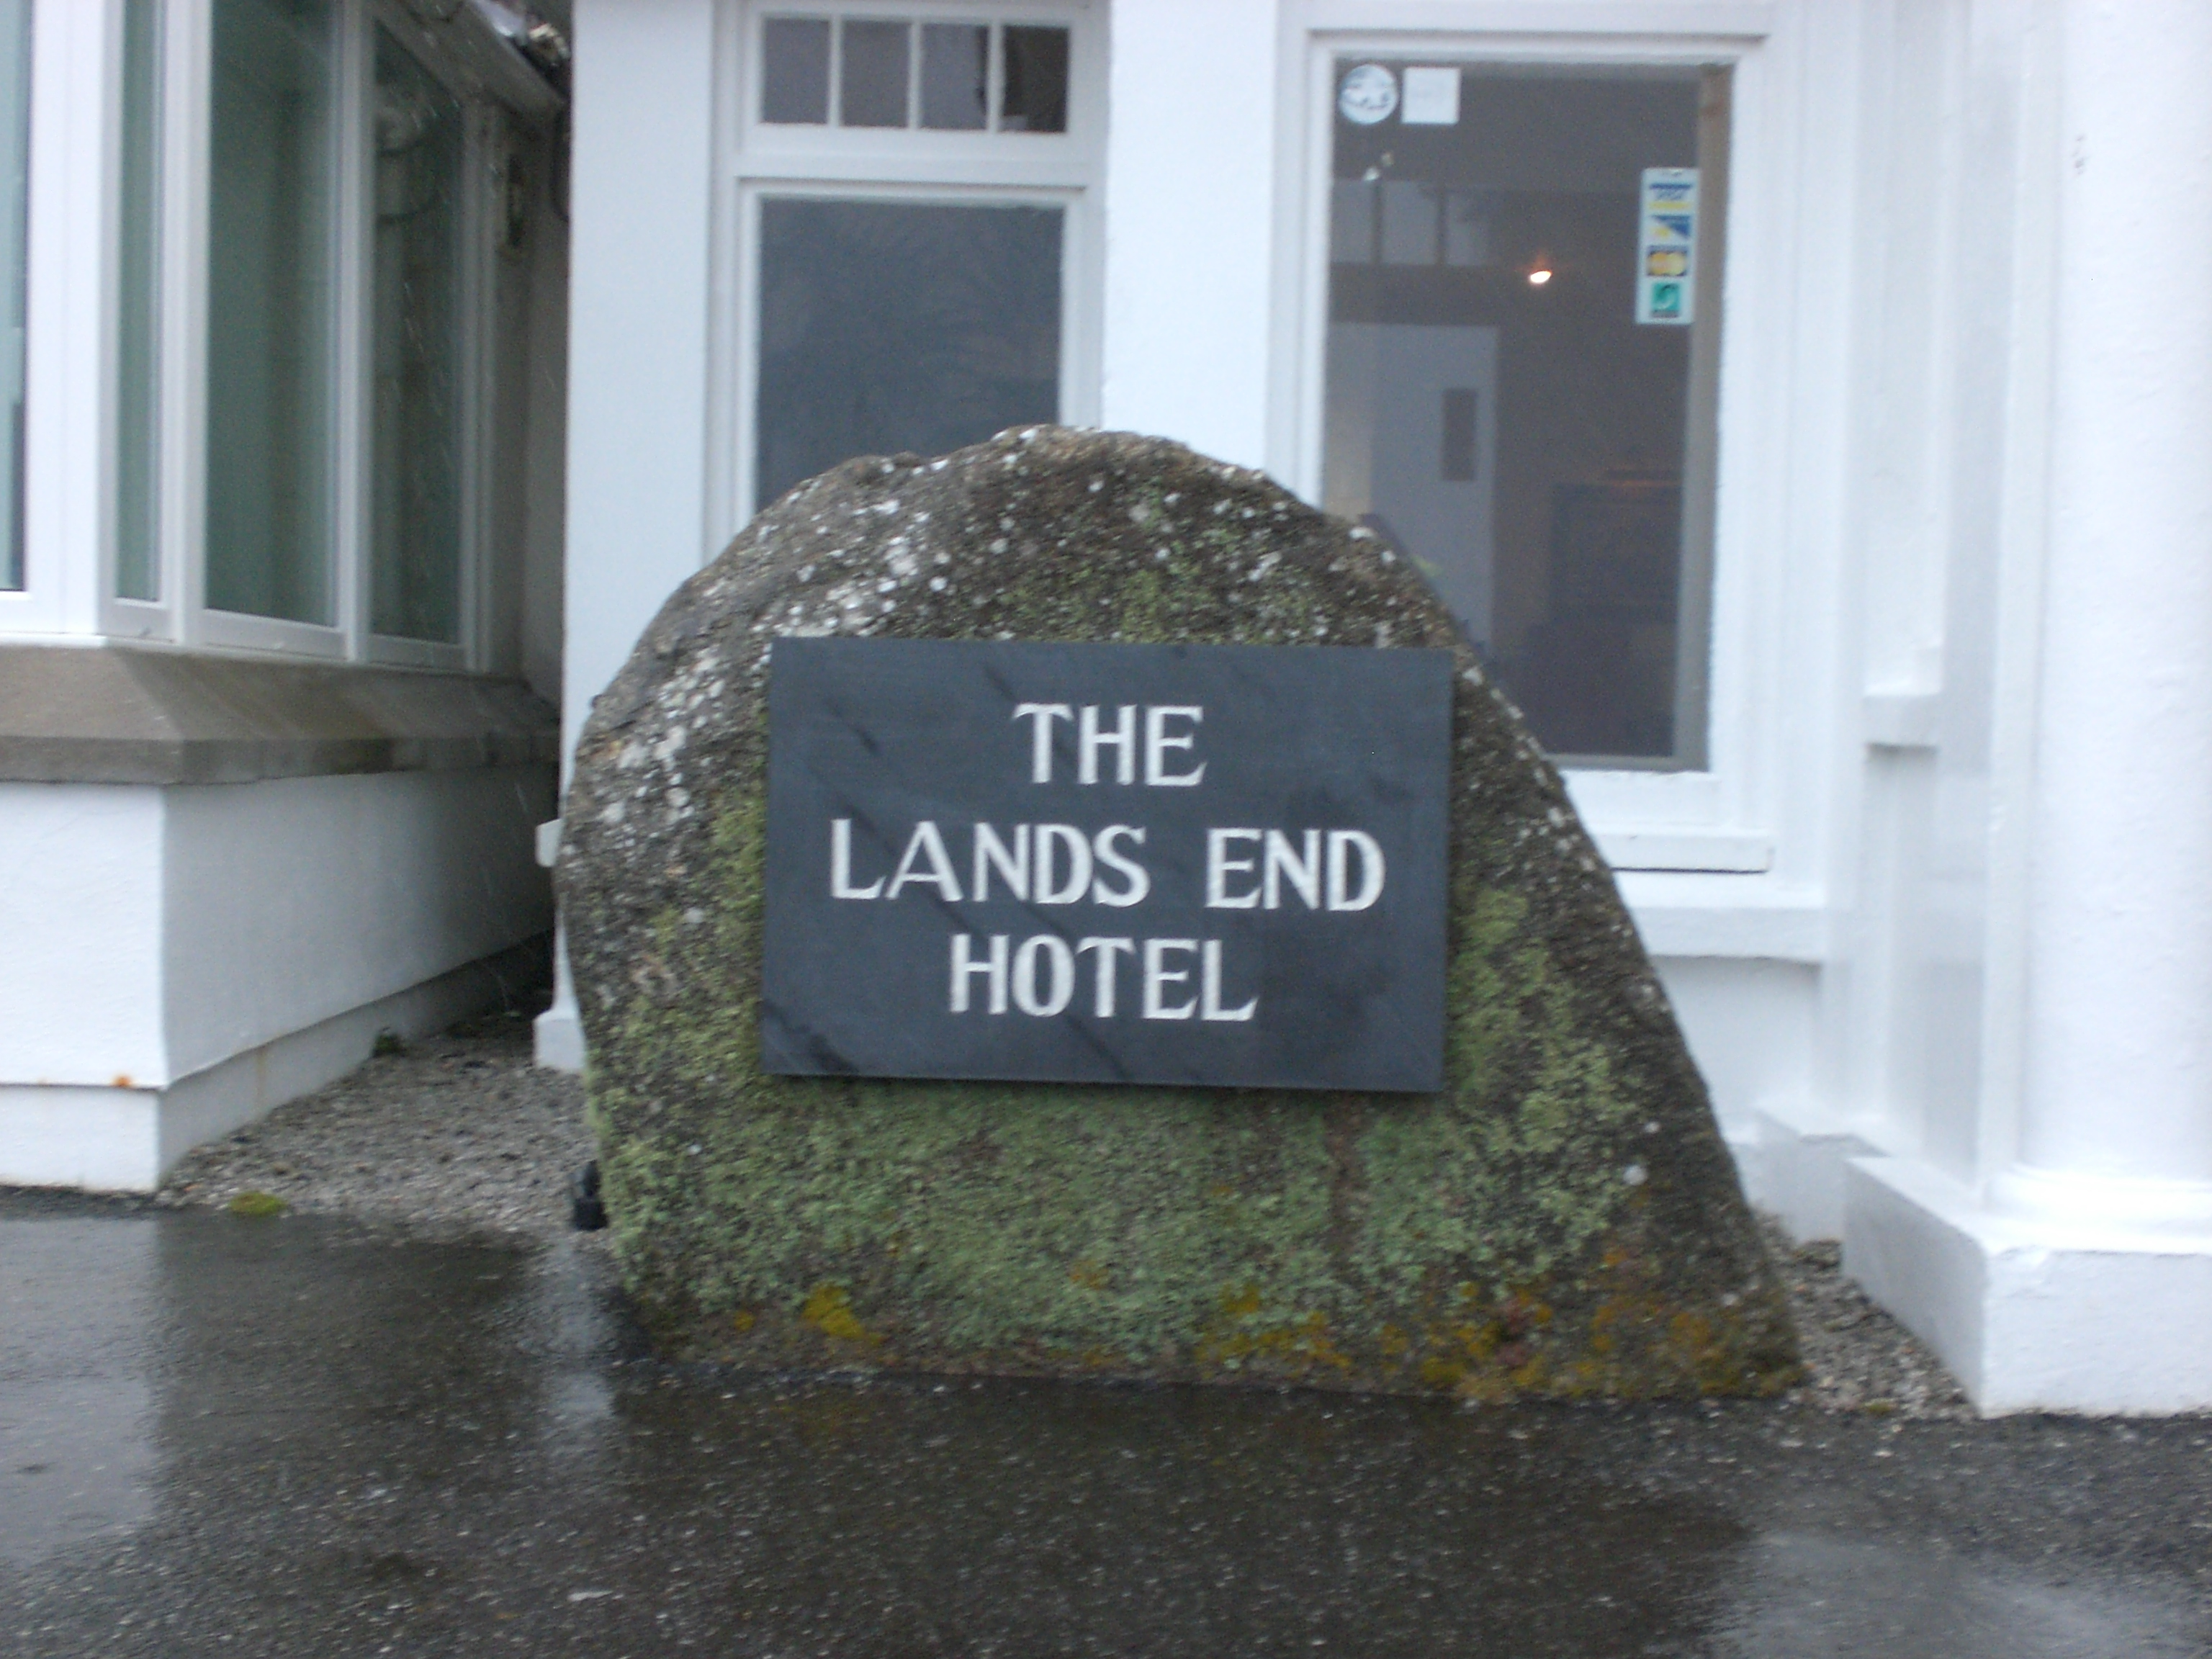 The Lands End hotel